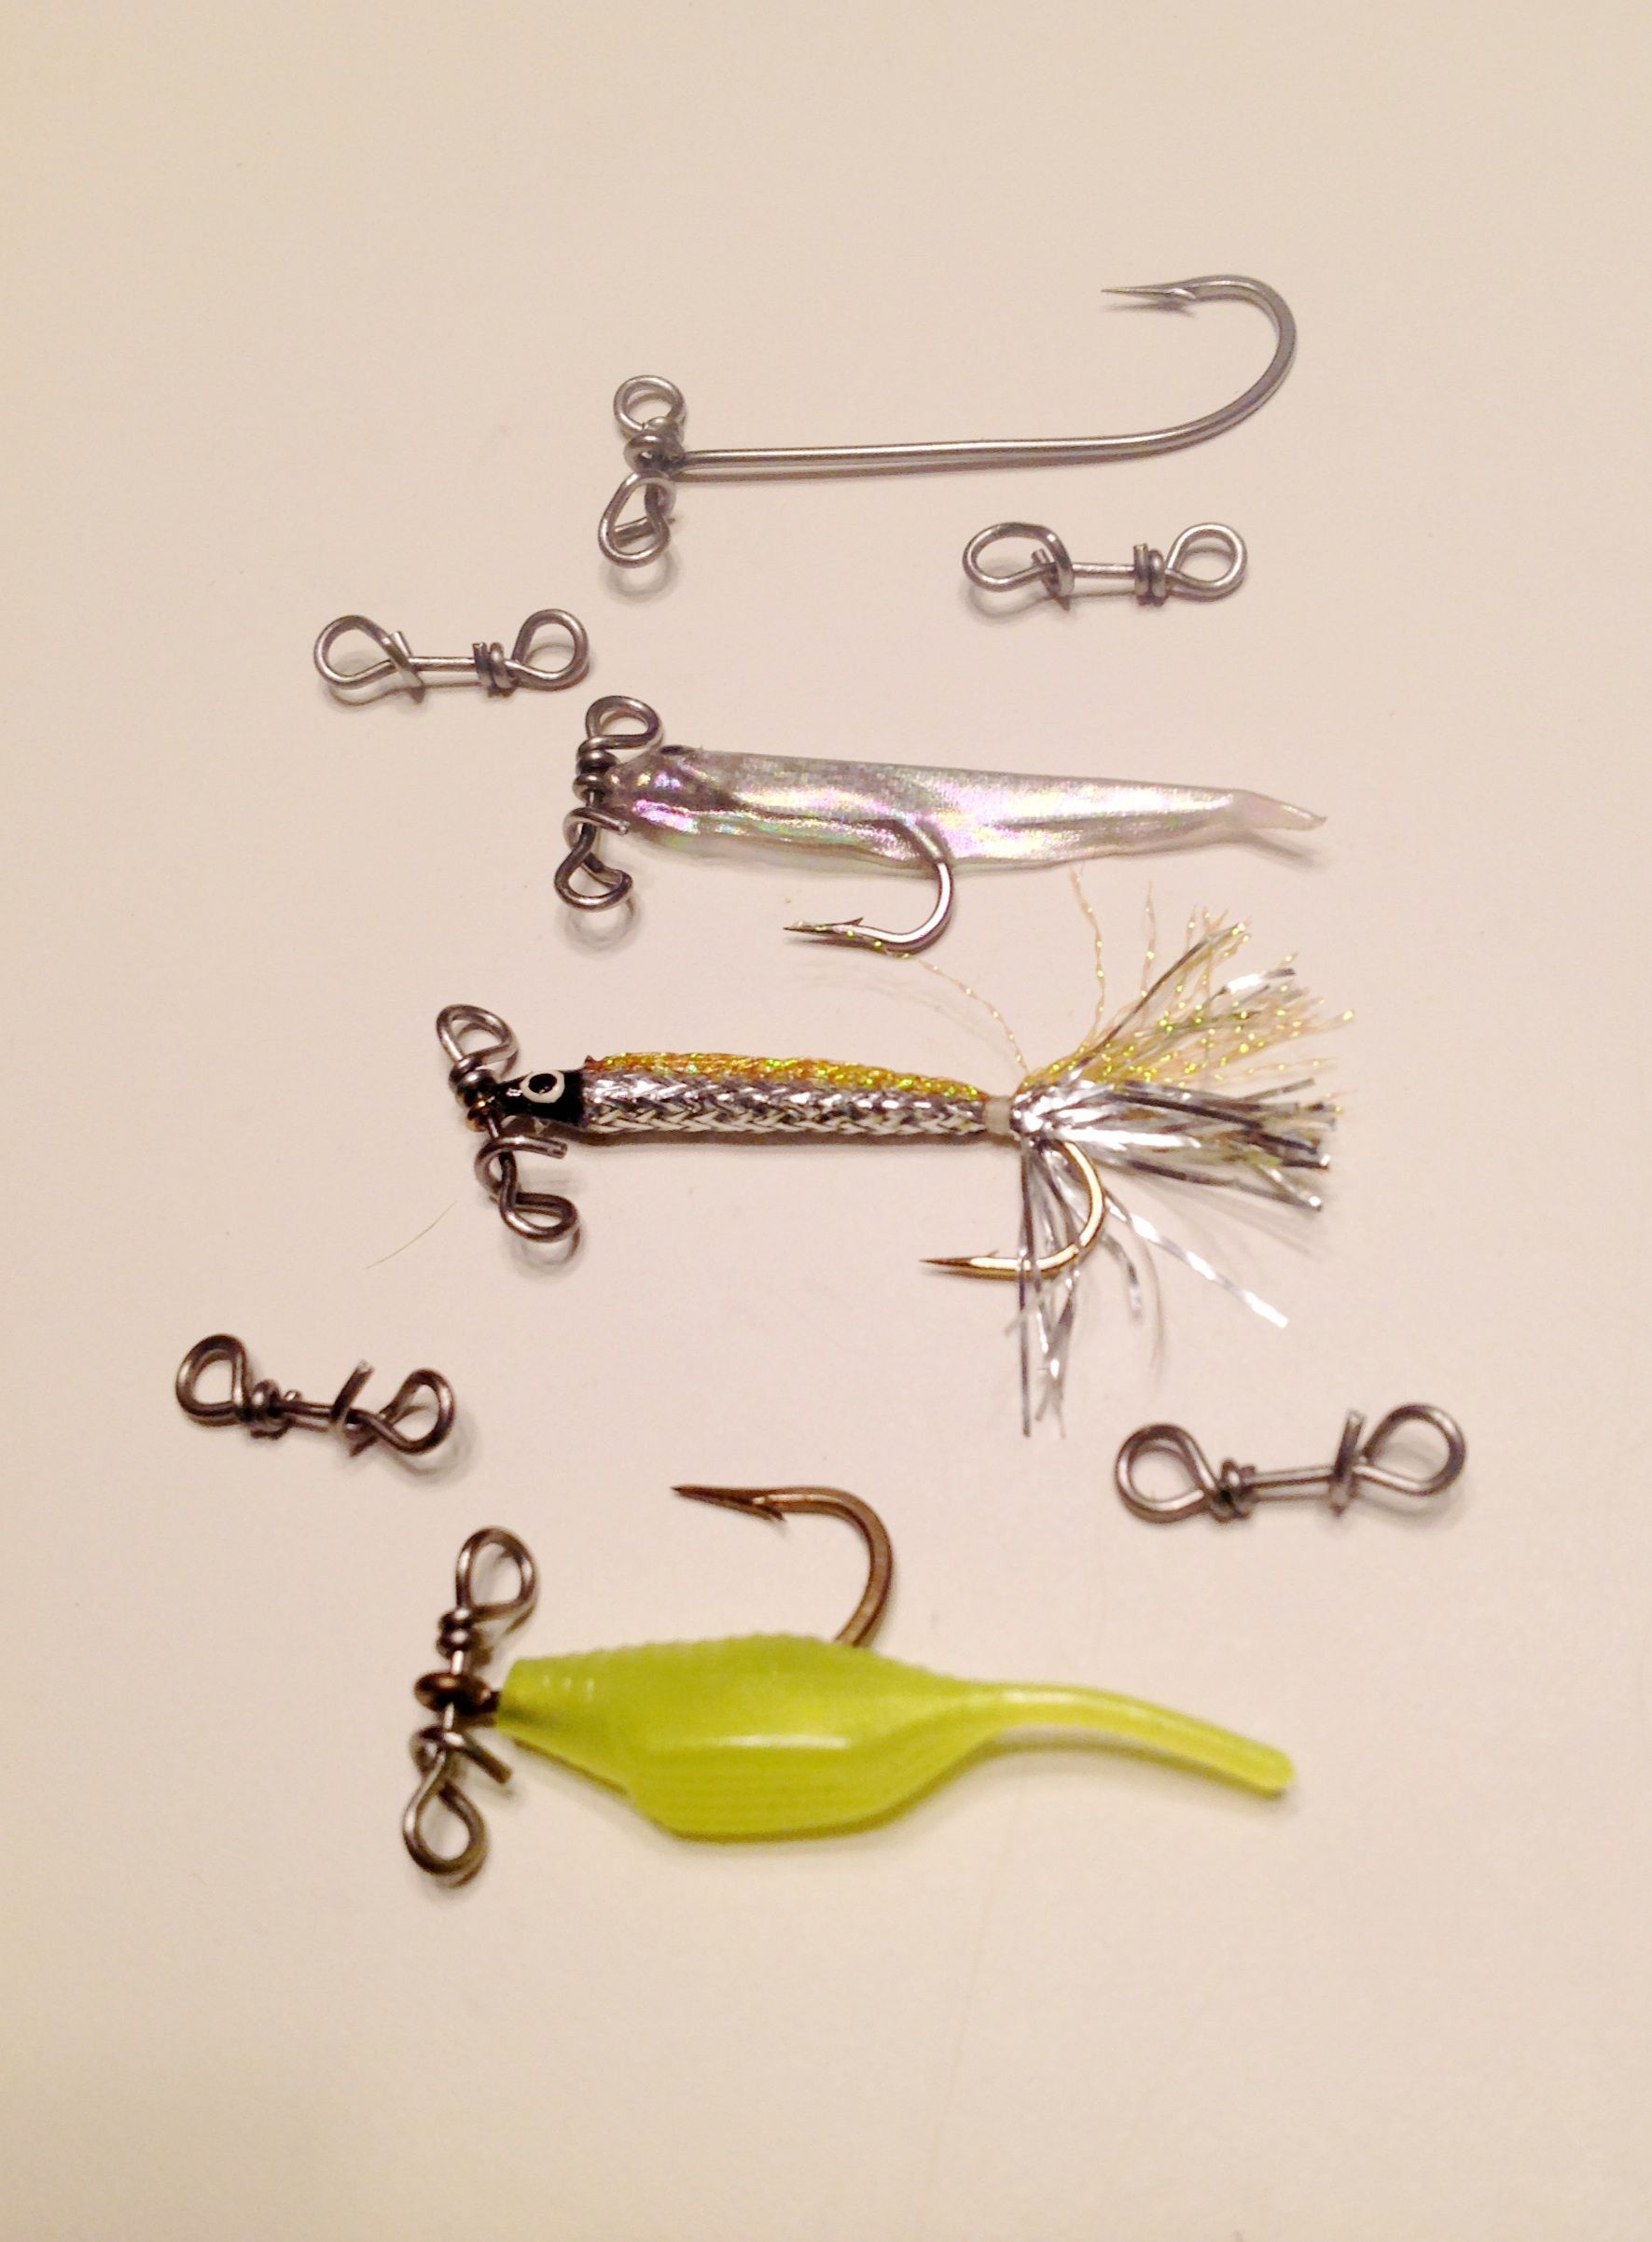 Say goodbye to line twists from drop down jig heads! Use